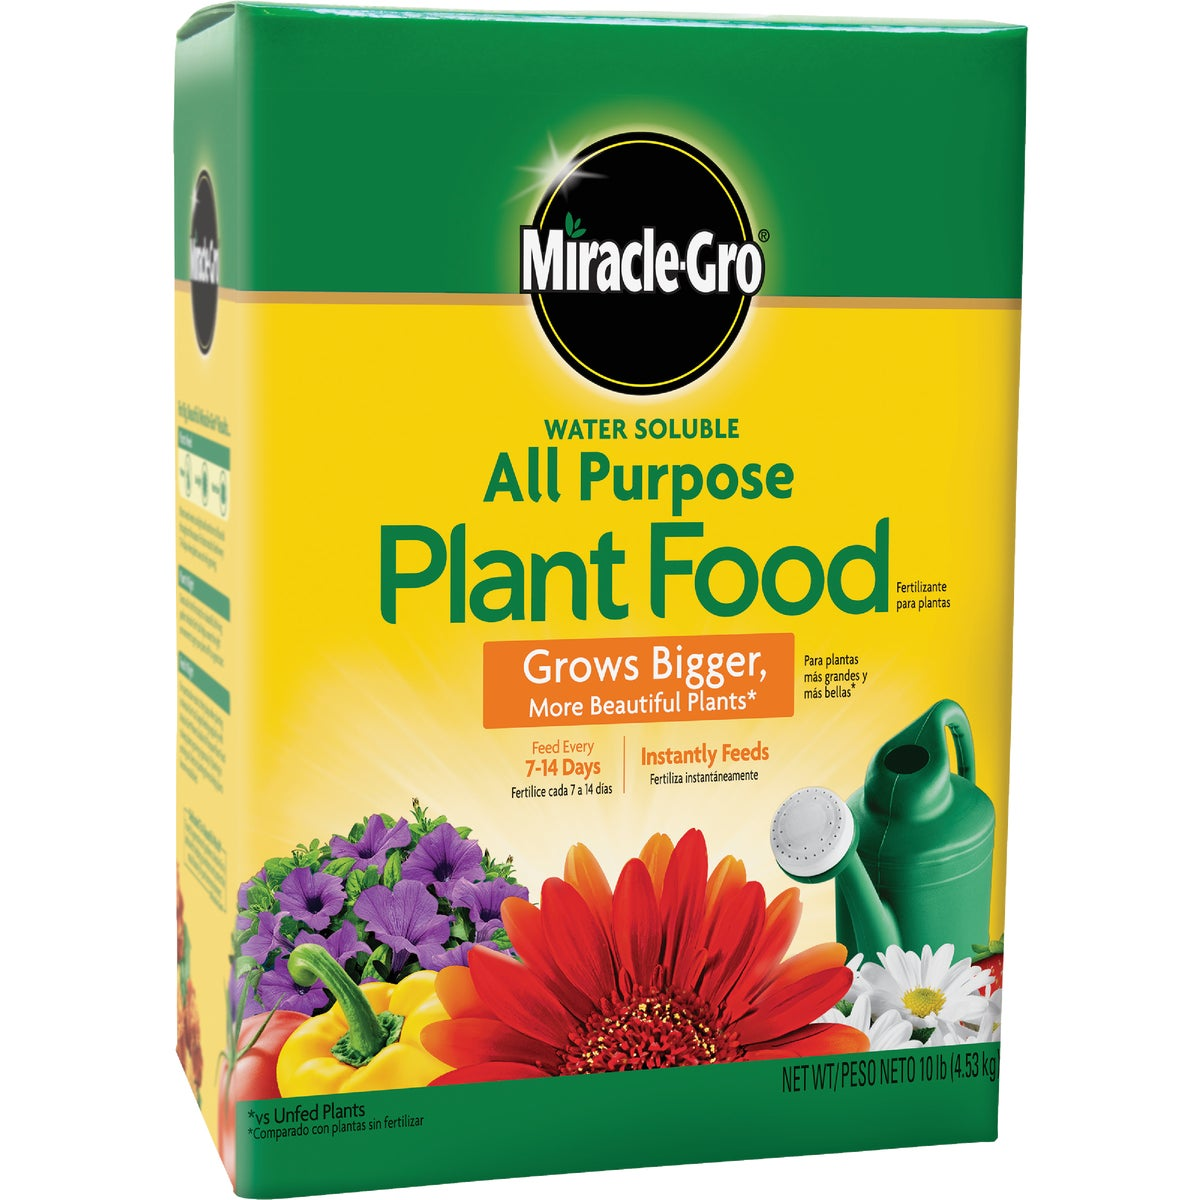 10LB MGRO PLANT FOOD - 1001193 by Scotts Company